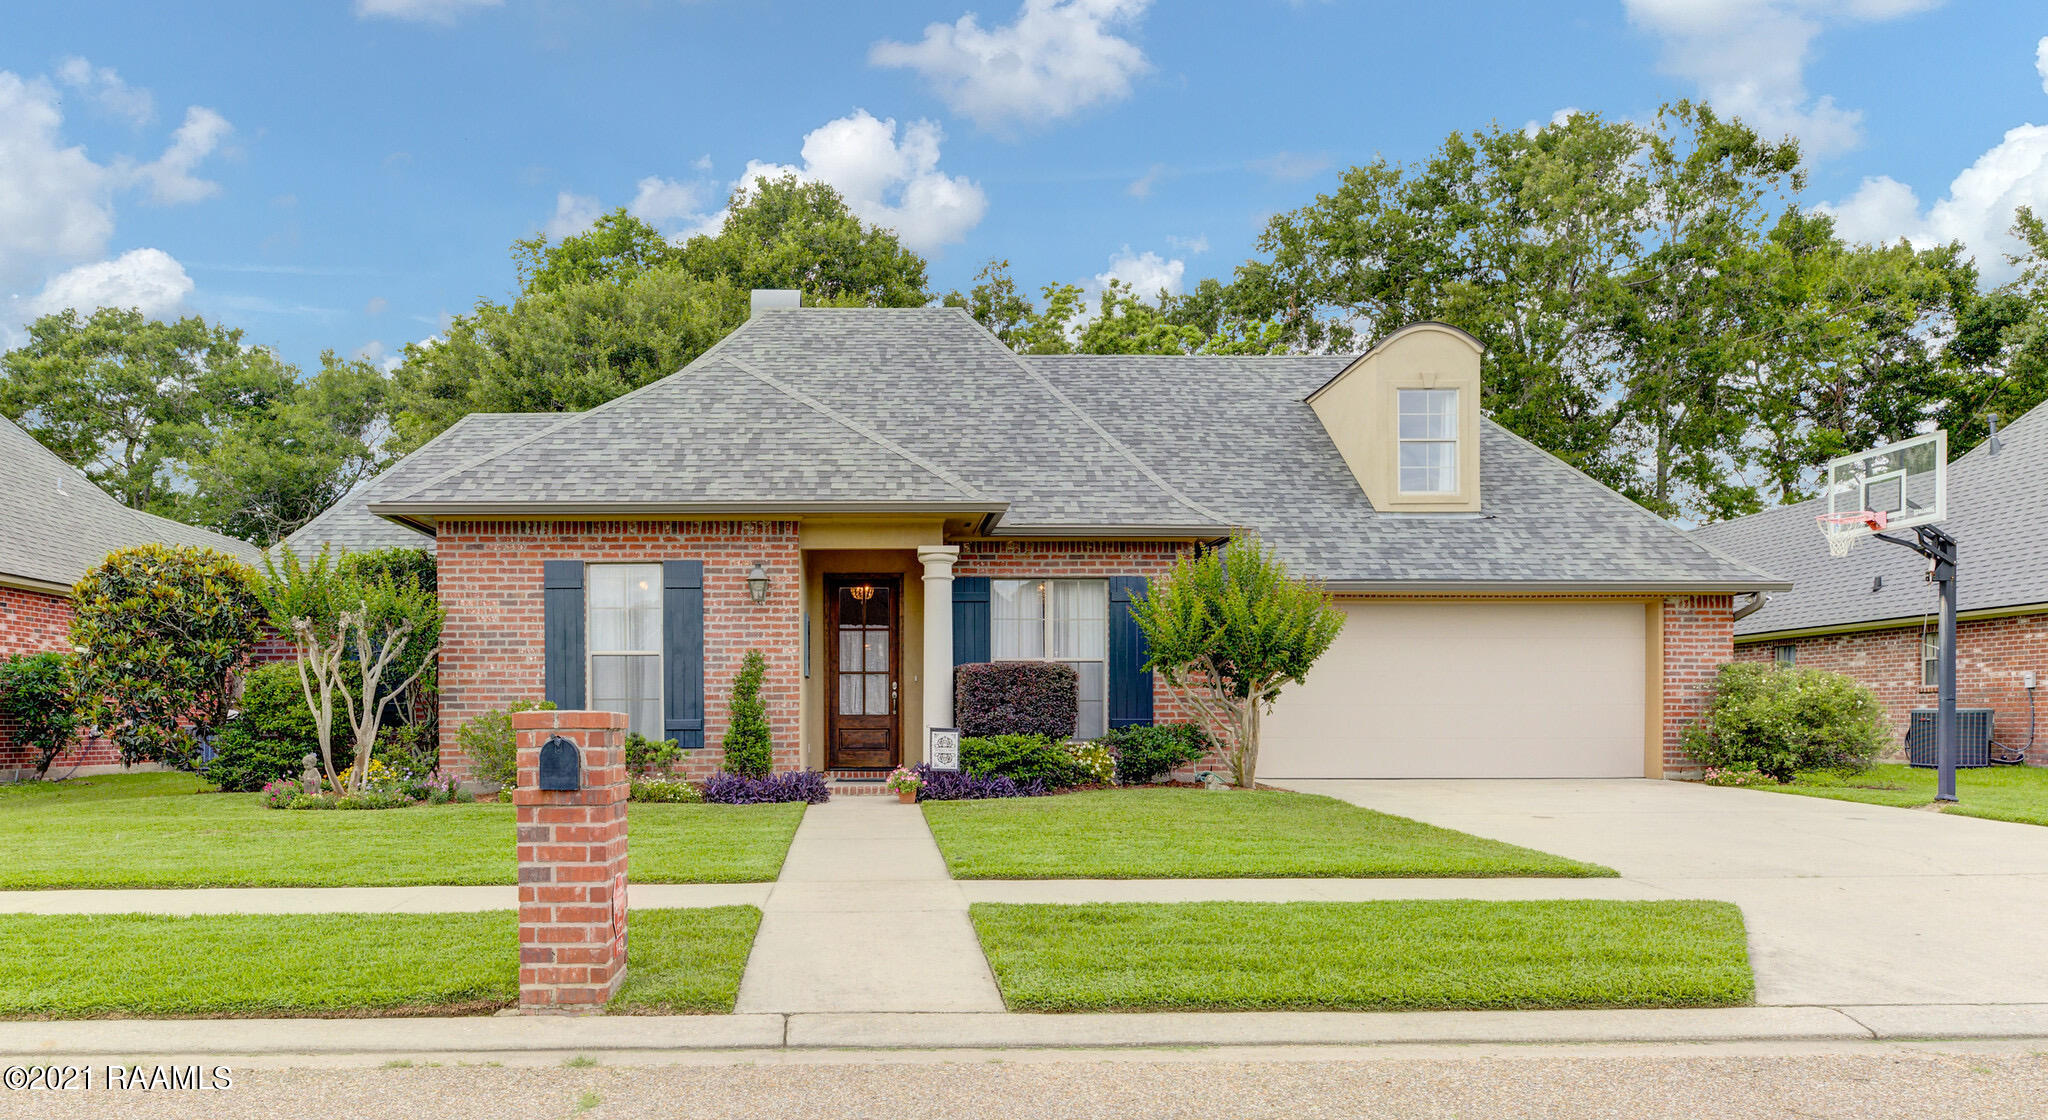 149 Willow Bend, Youngsville, LA 70592 Photo #1